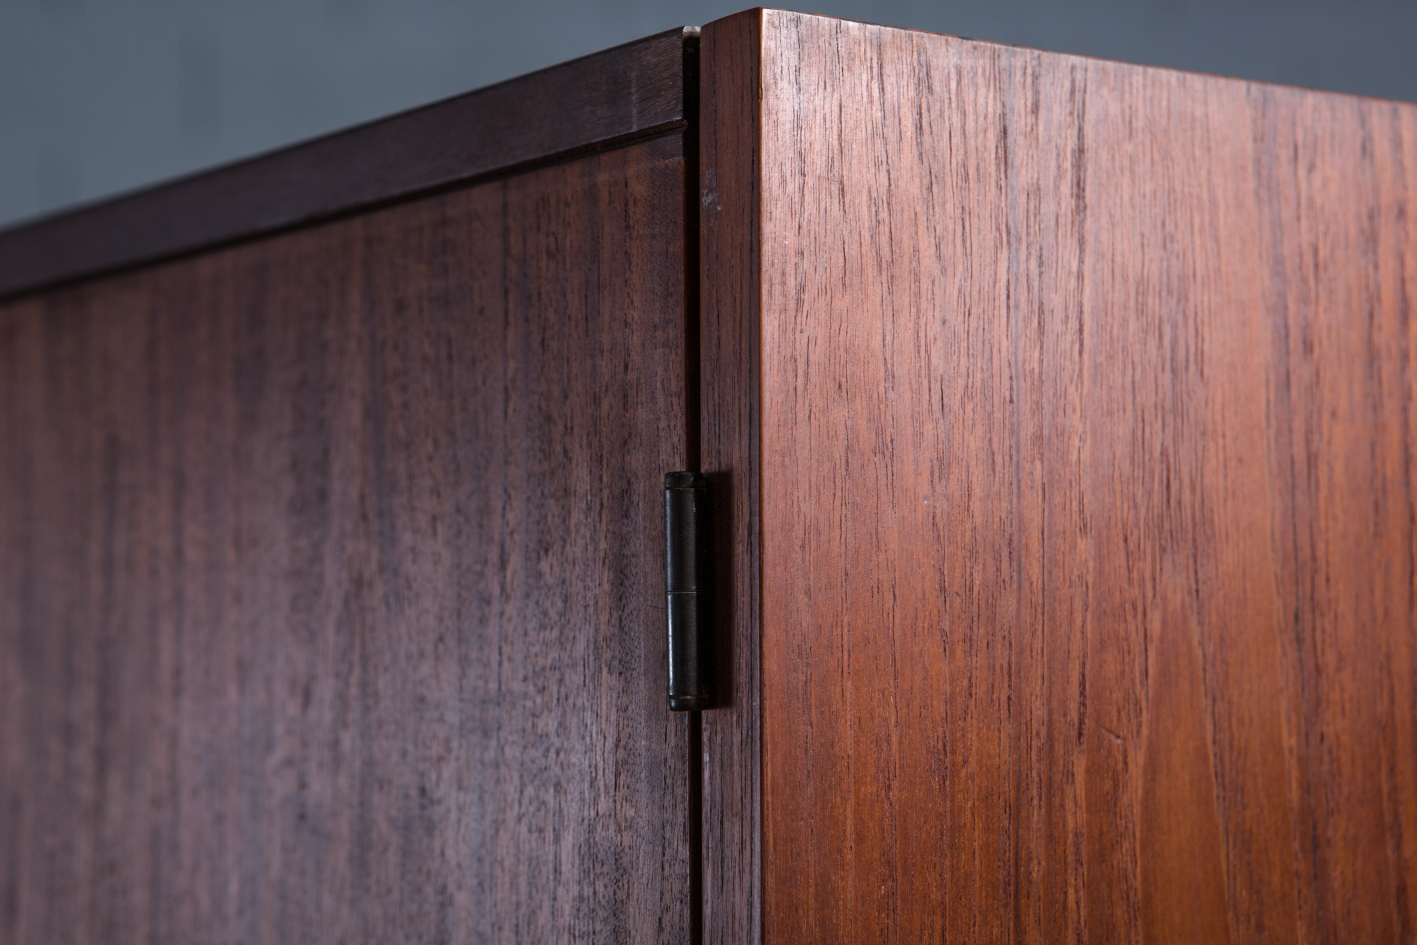 Wardrobe KU14 by Cees Braakman for Pastoe - Wood detail